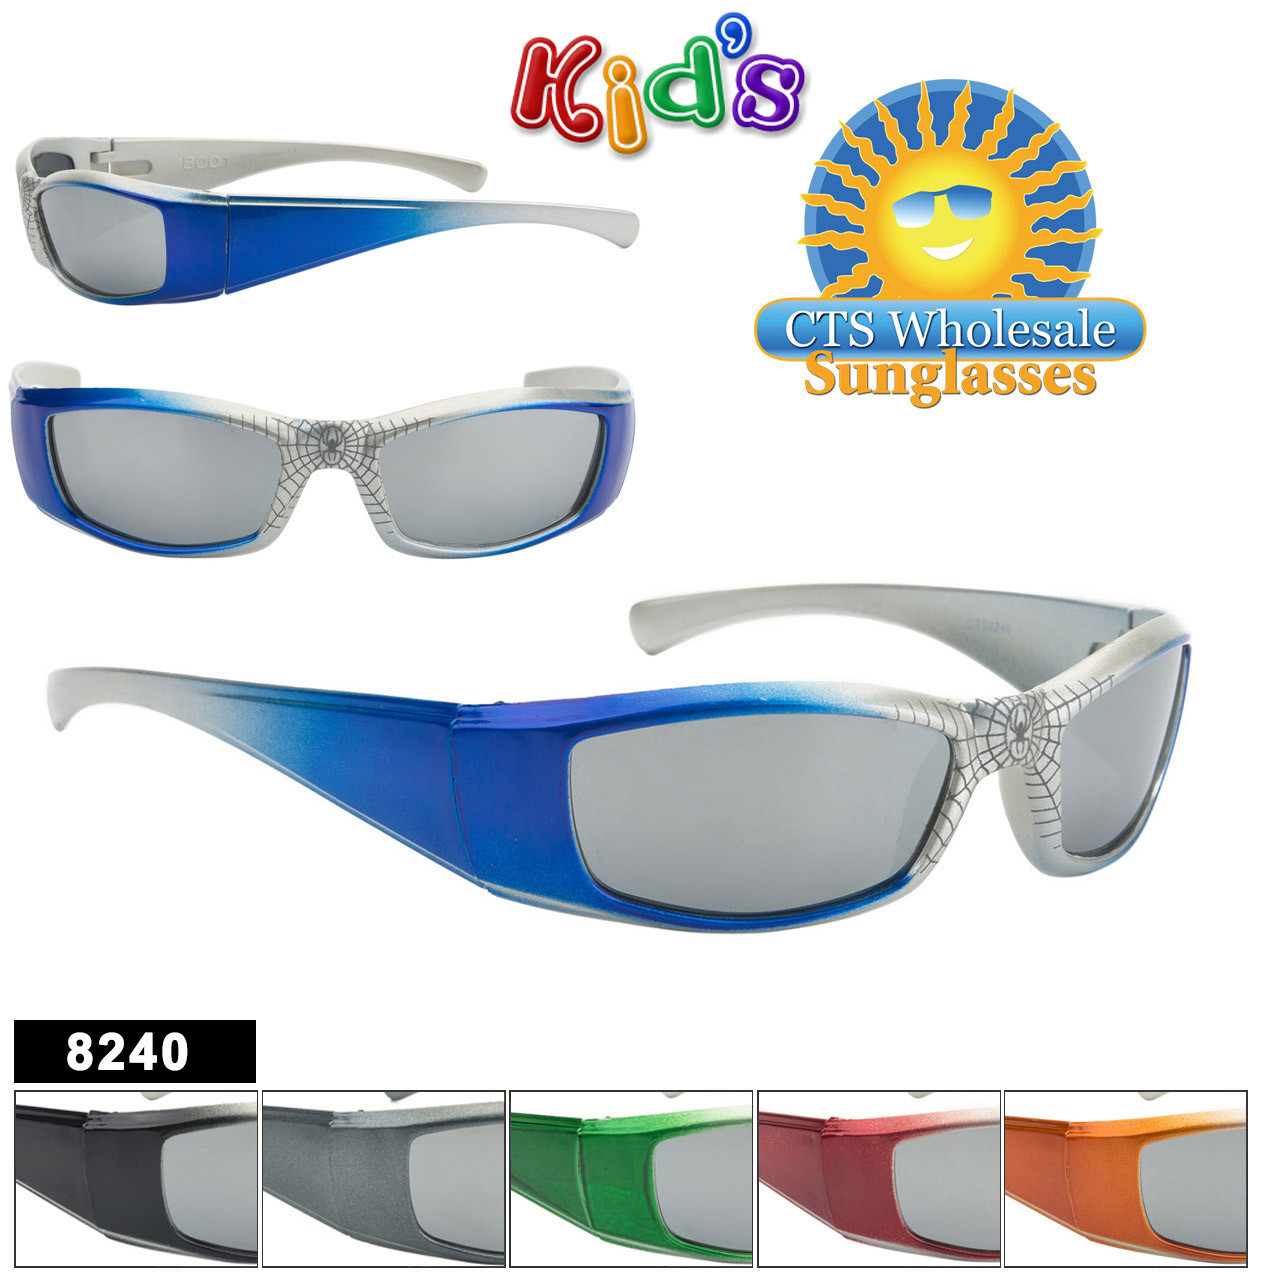 e749ca1c4939 Mirrored Spider Web Sunglasses For Kids - Style #8240 | CTS ...